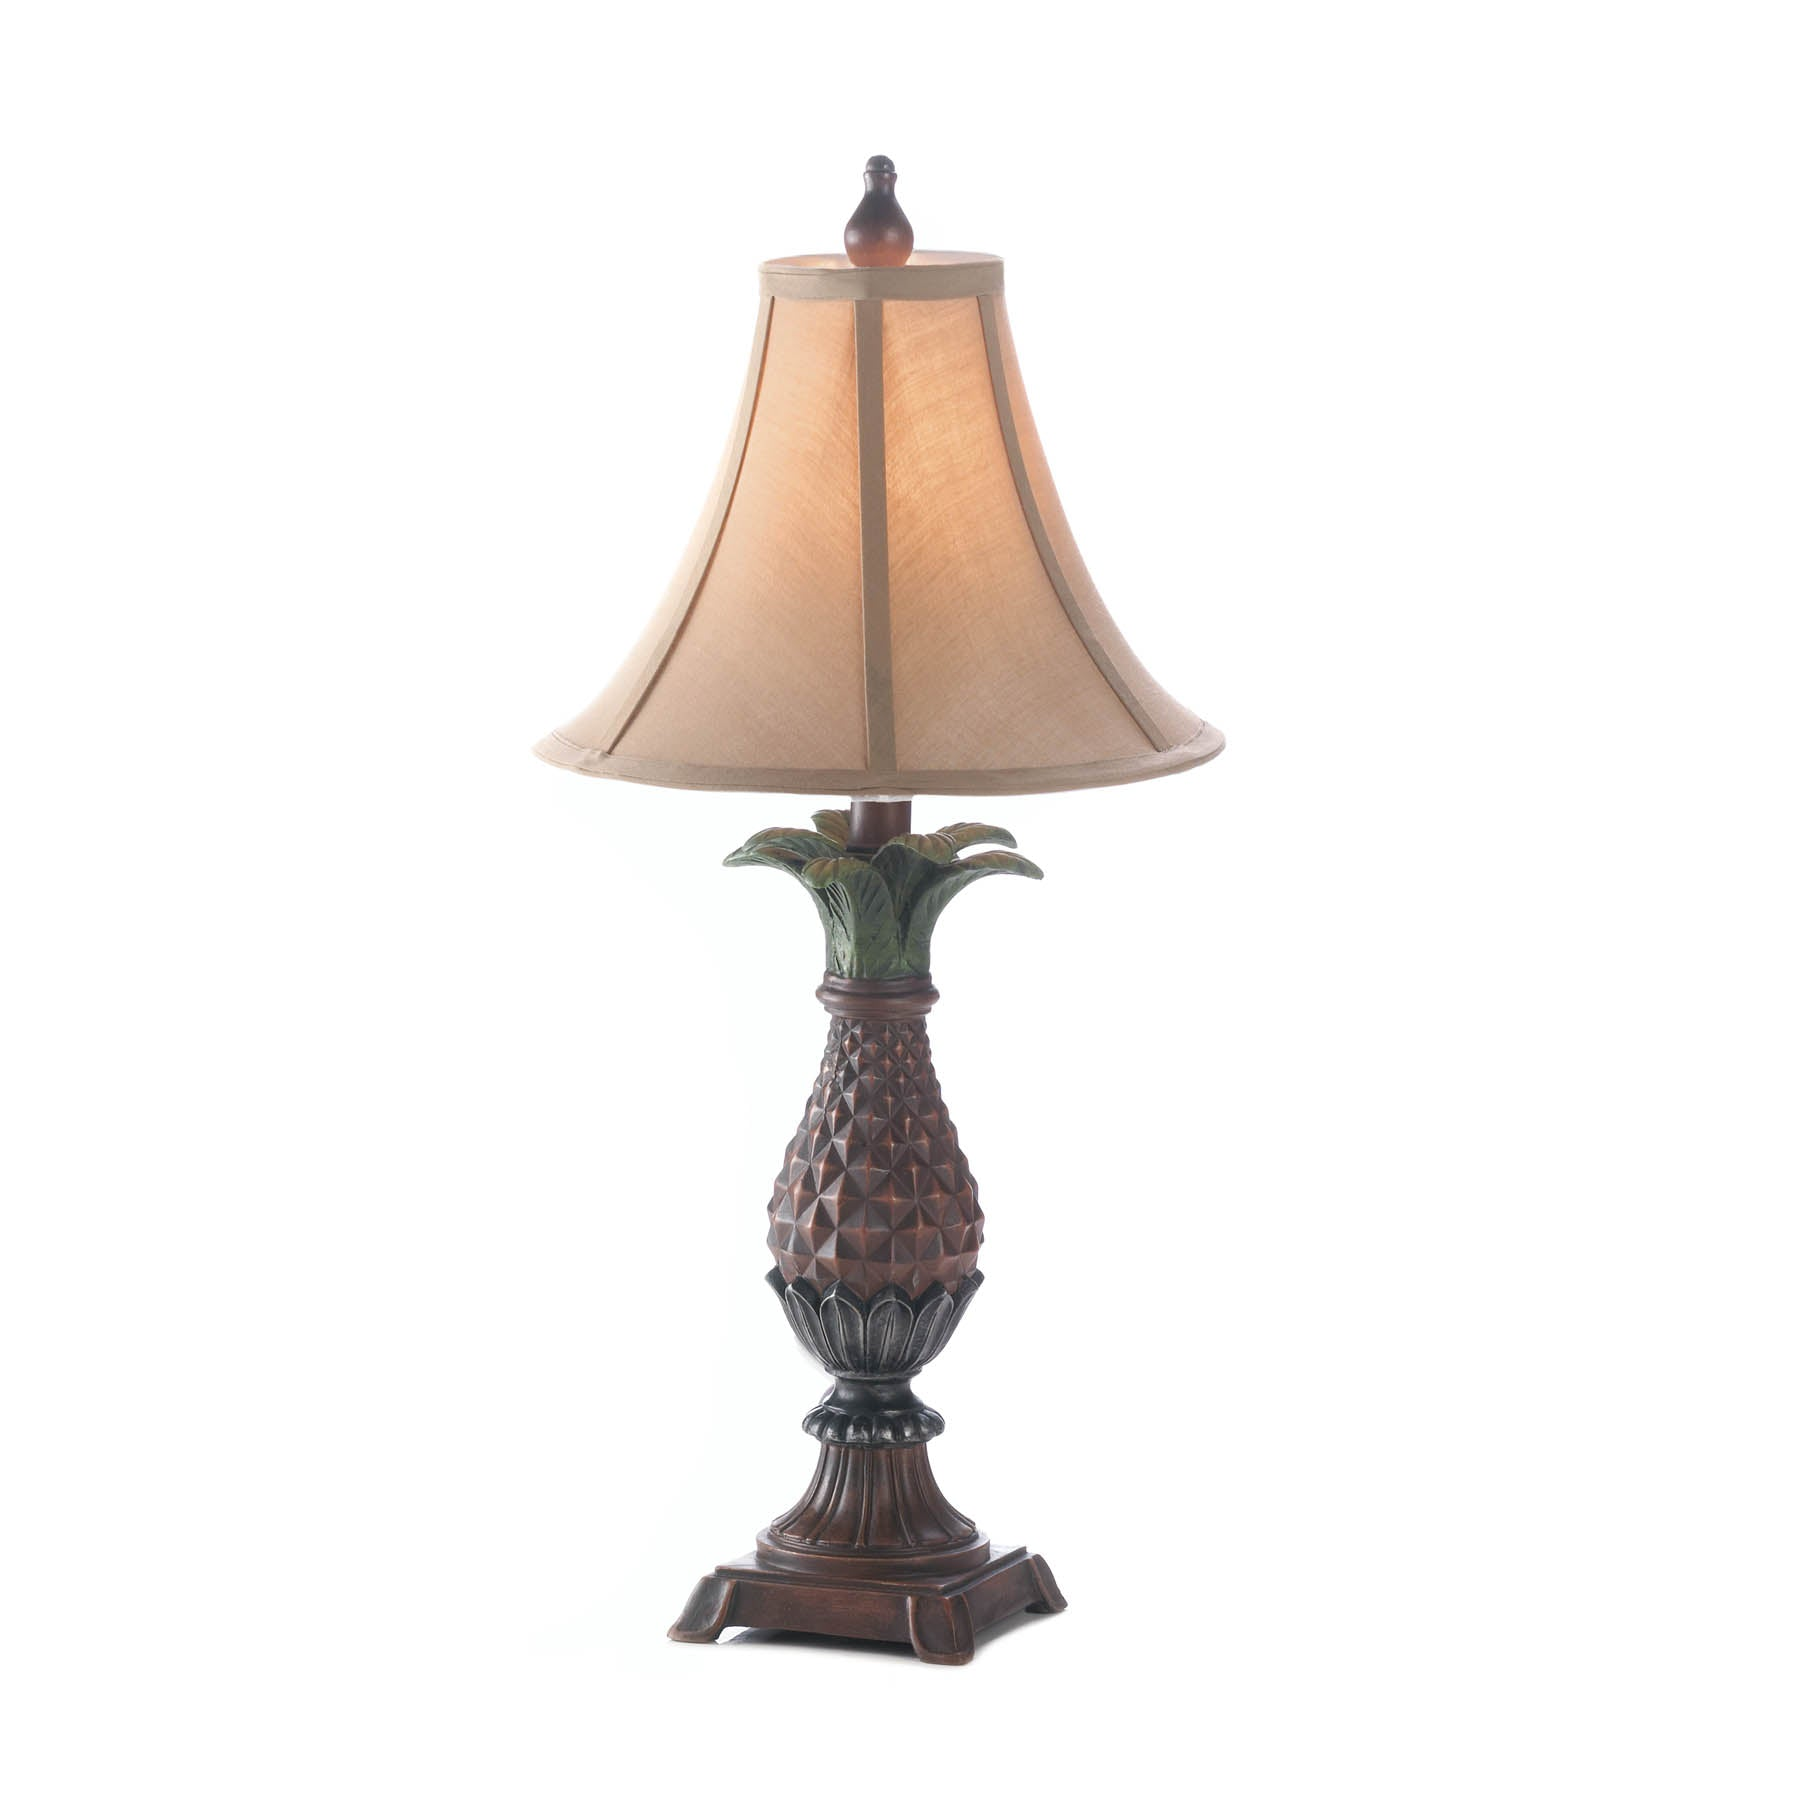 Gallery of Light Pineapple Table Lamp - 10017183